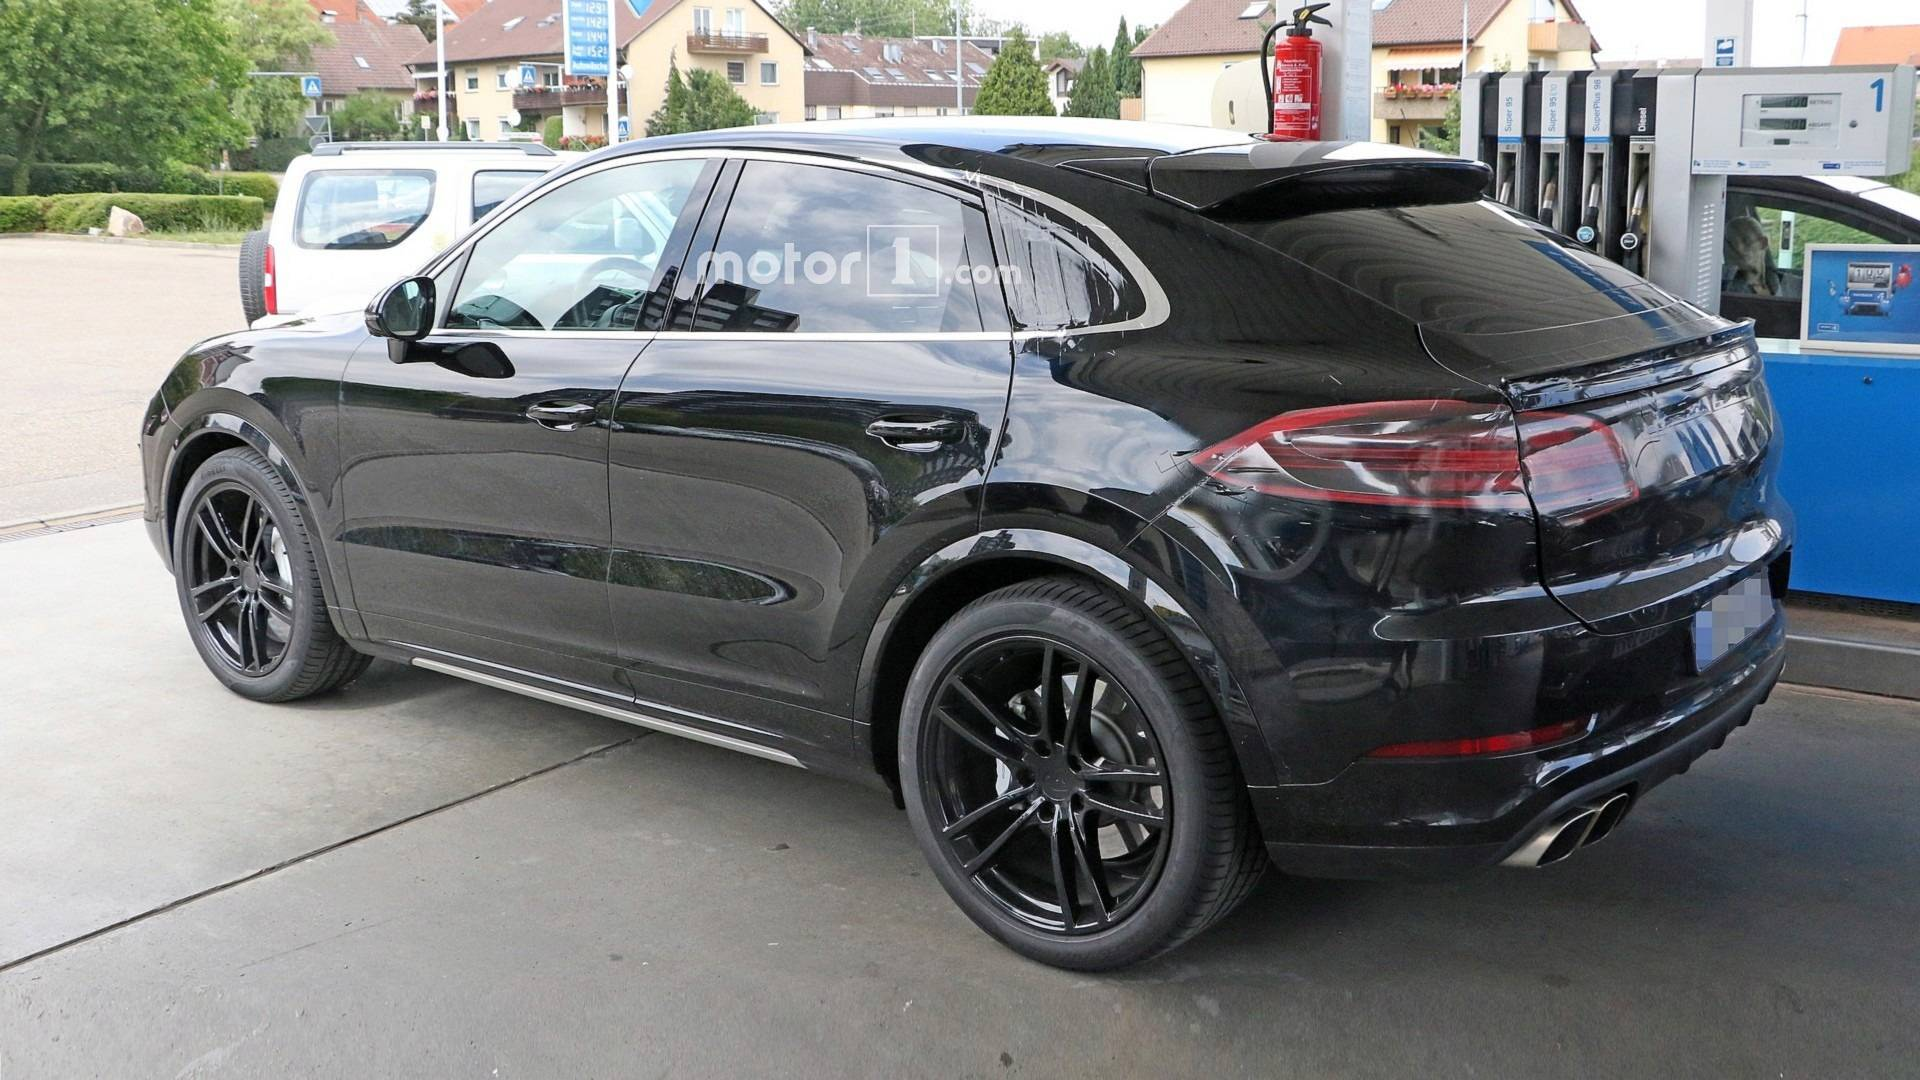 70 The 2020 Porsche Cayenne Turbo S First Drive